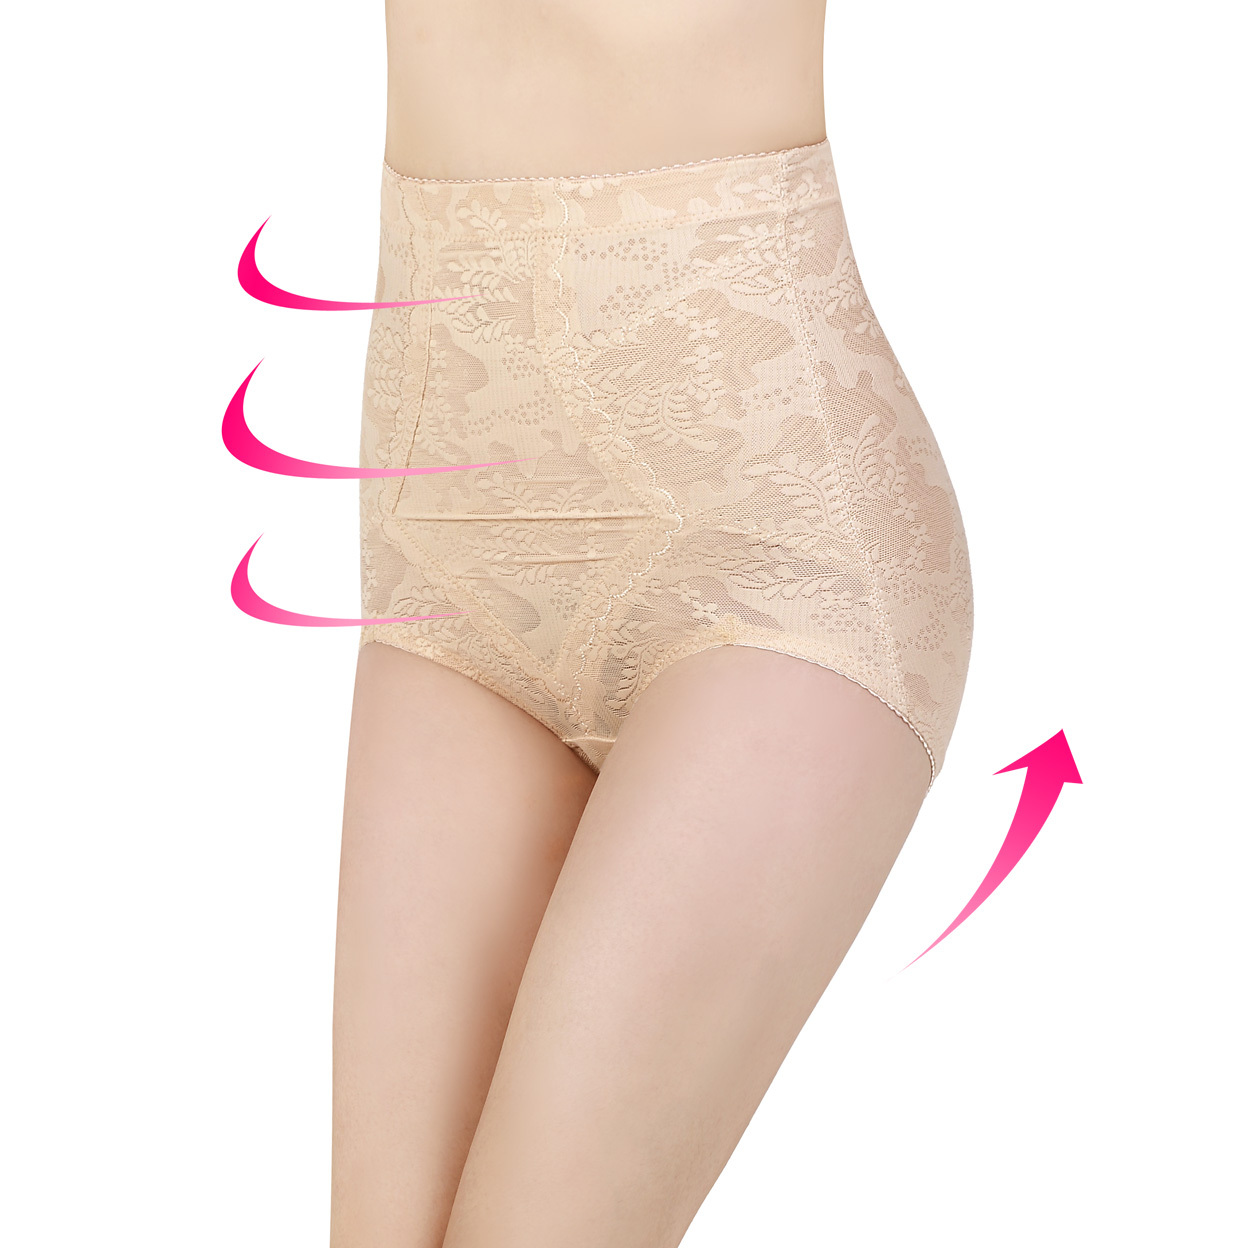 2 bag mail super high waisted seamless one-piece body corset pants tights abdomen hips waist pants female